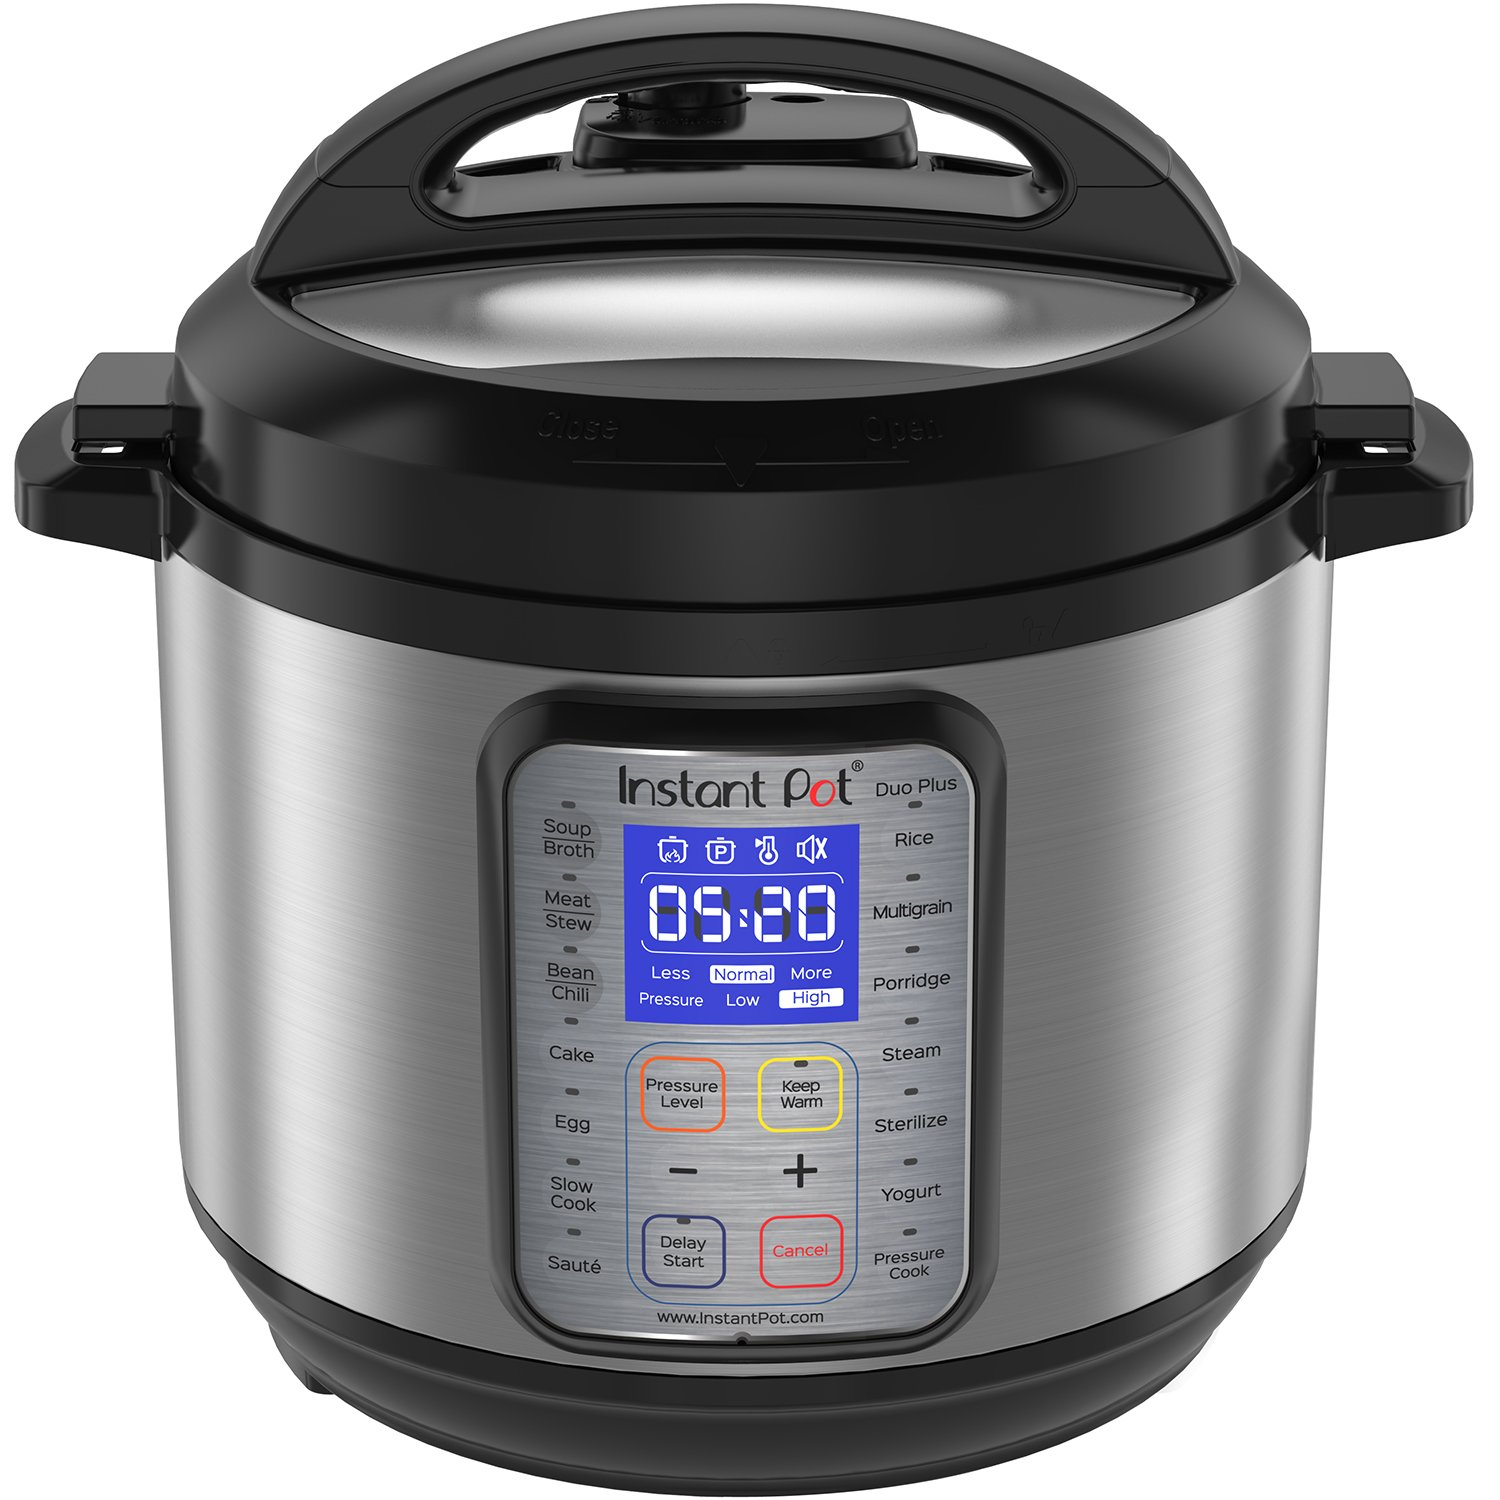 Instant Pot DUO Plus 60, 6 Qt 9-in-1 Multi- Use Programmable Pressure Cooker, Slow Cooker, Rice Cooker, Yogurt Maker, Egg Cooker, Sauté, Steamer, Warmer, and Sterilizer by Instant Pot